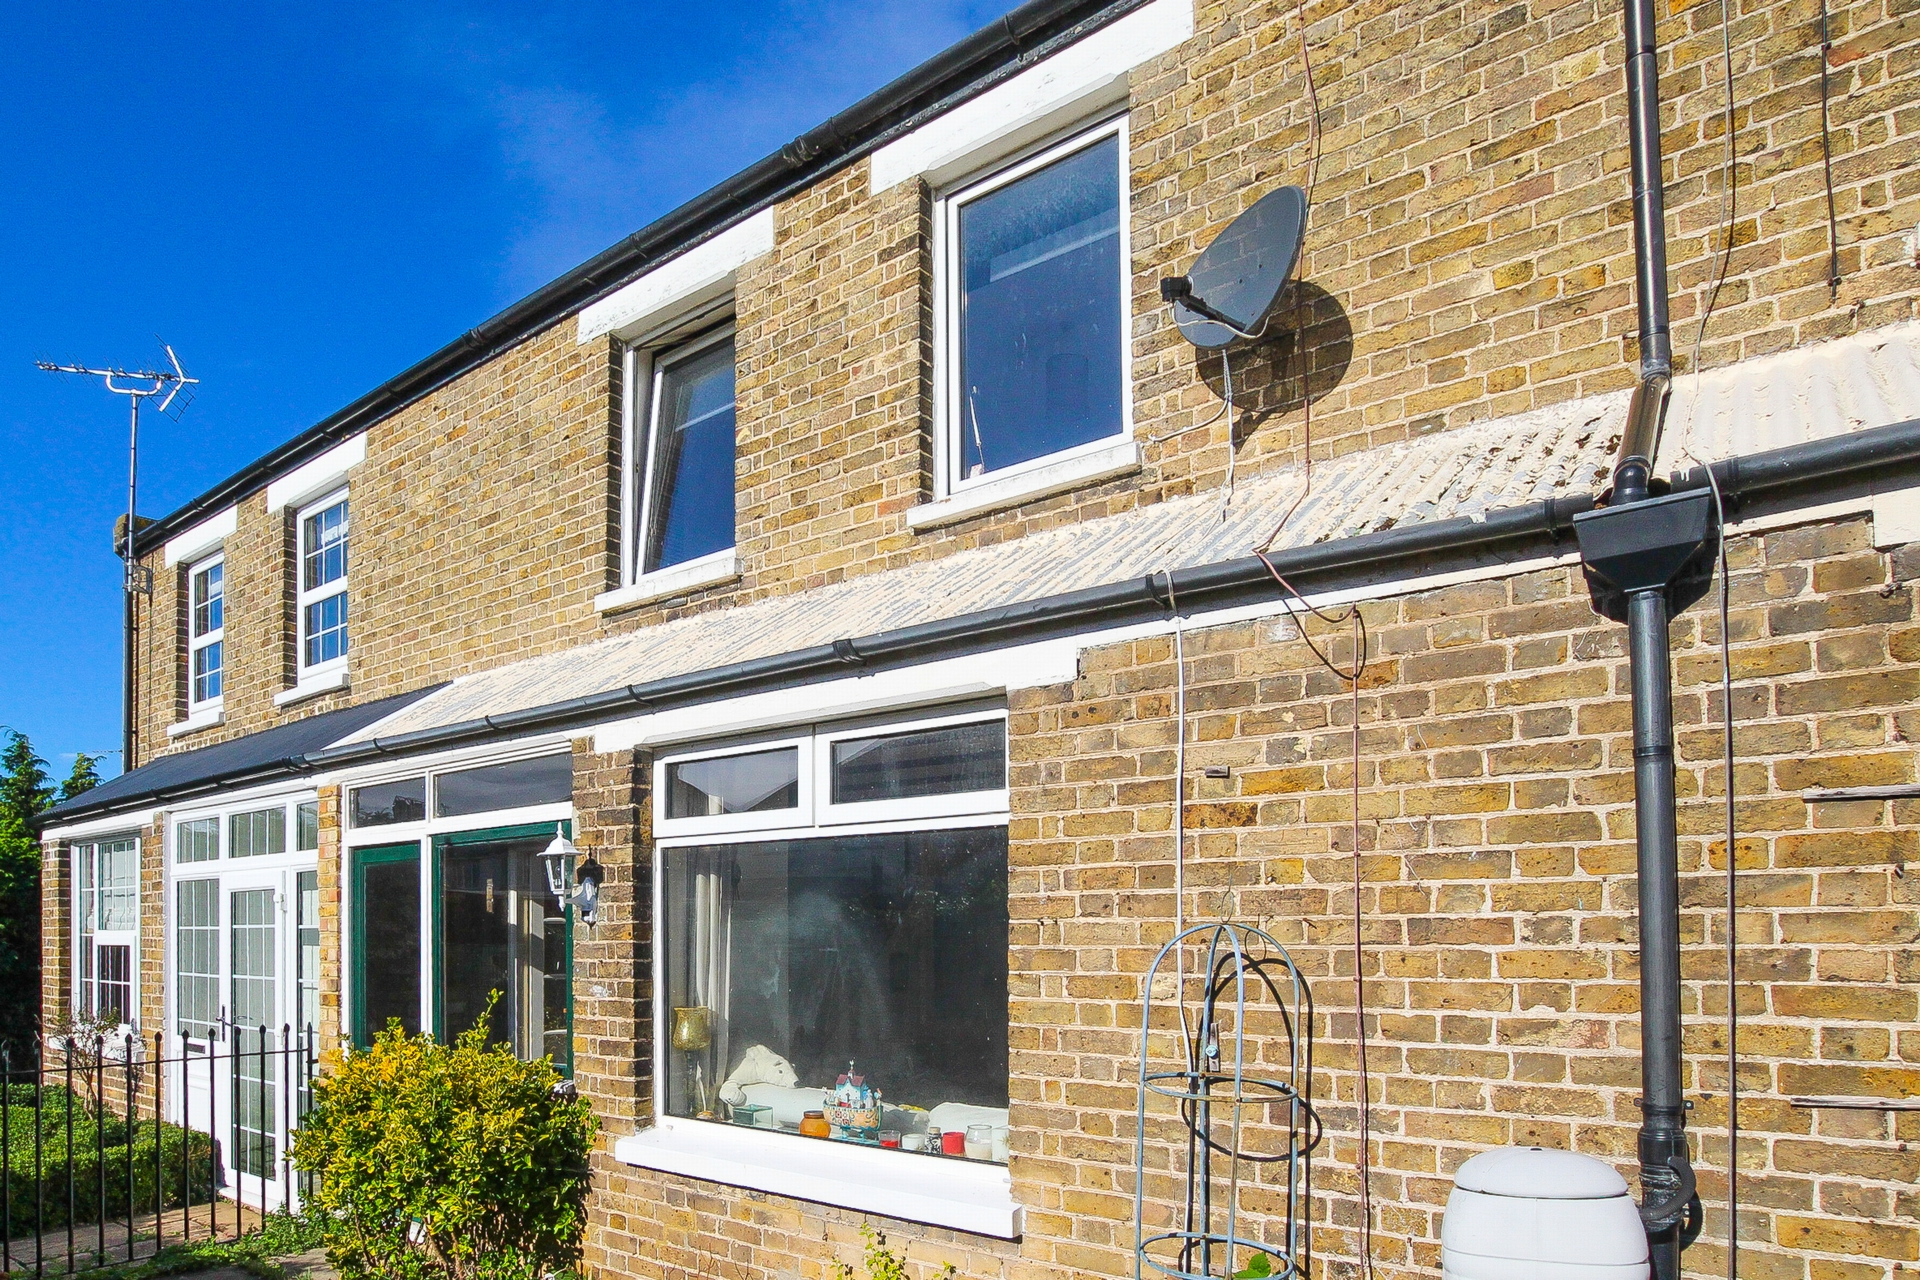 2 bed house for sale in Gordon Square, Birchington, CT7 1